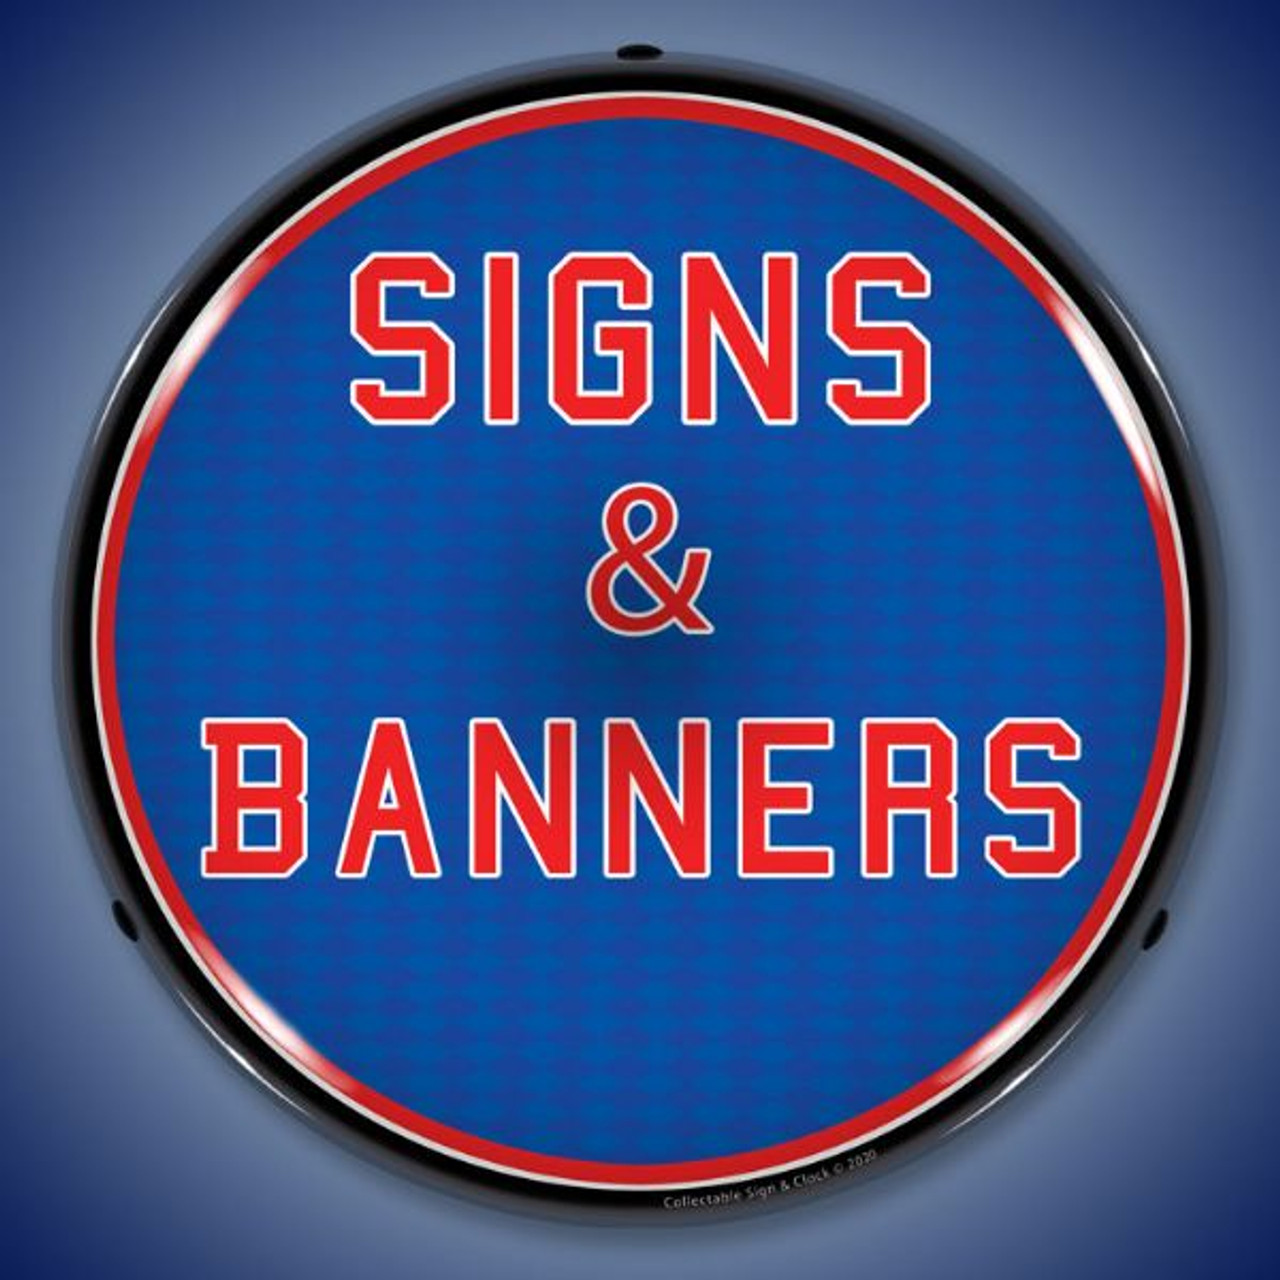 Signs & Banners LED Lighted Business Sign 14 x 14 Inches